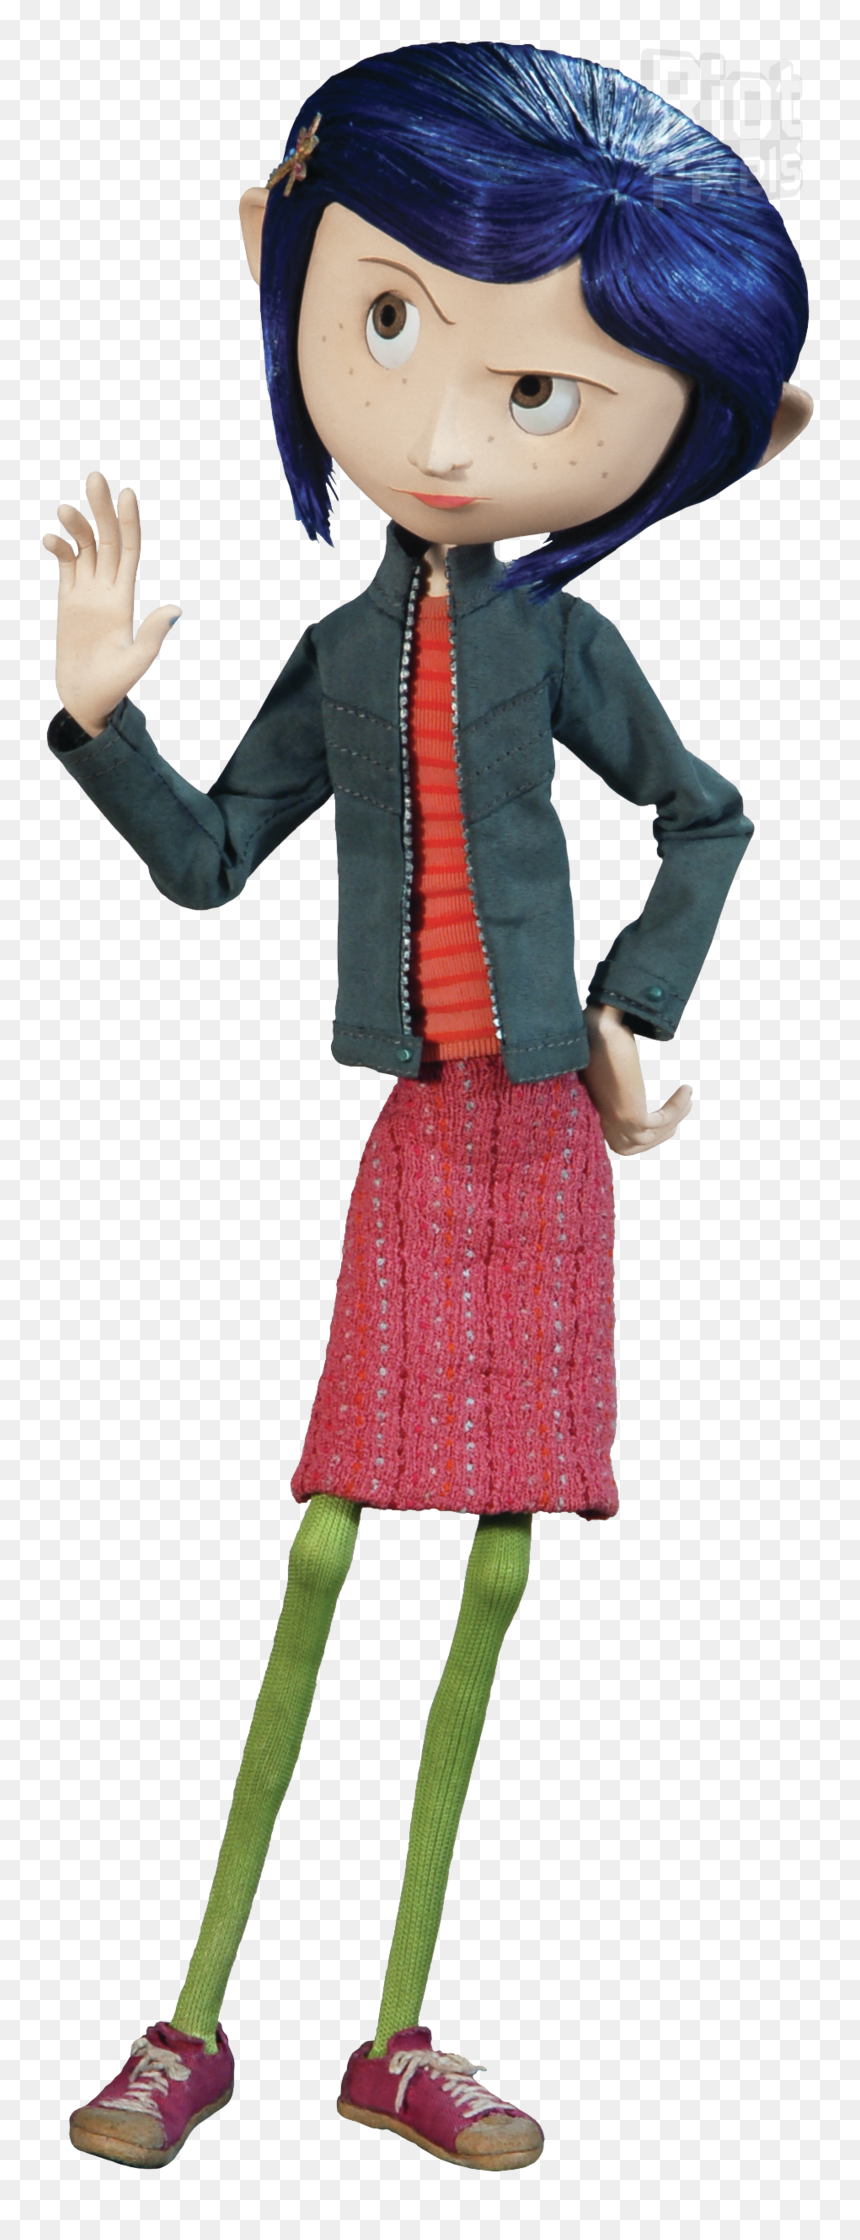 Coraline Movie Outfits Hd Png Download Vhv